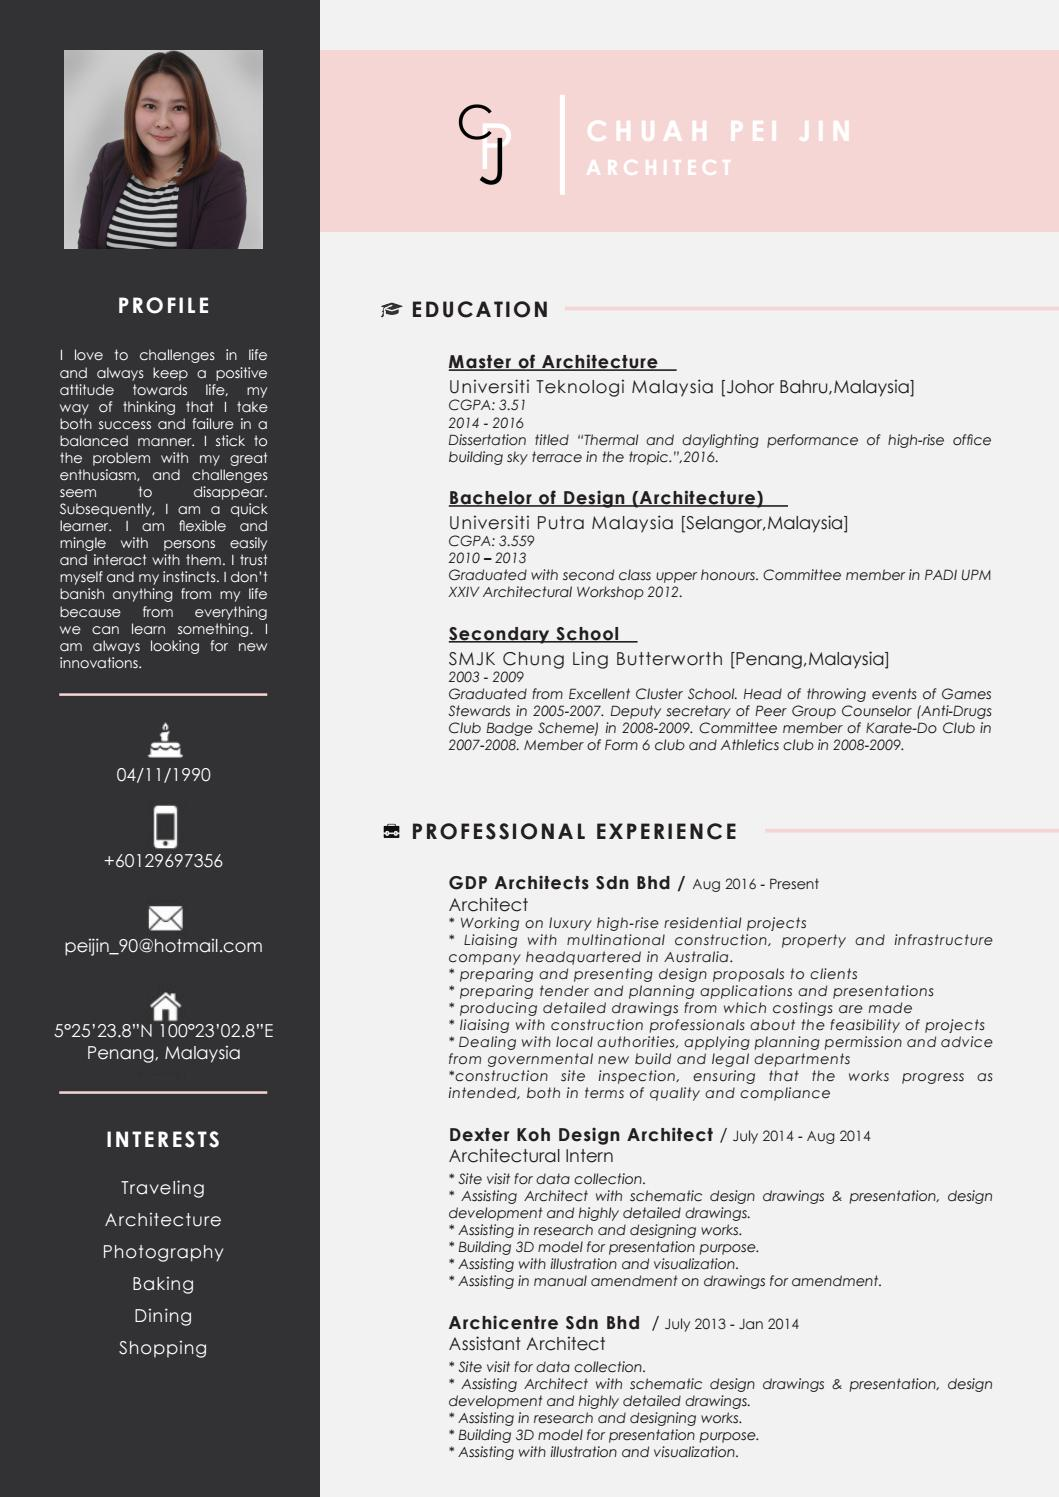 CHUAH PEI JIN - COVER LETTER & RESUME by Pei Jin - issuu